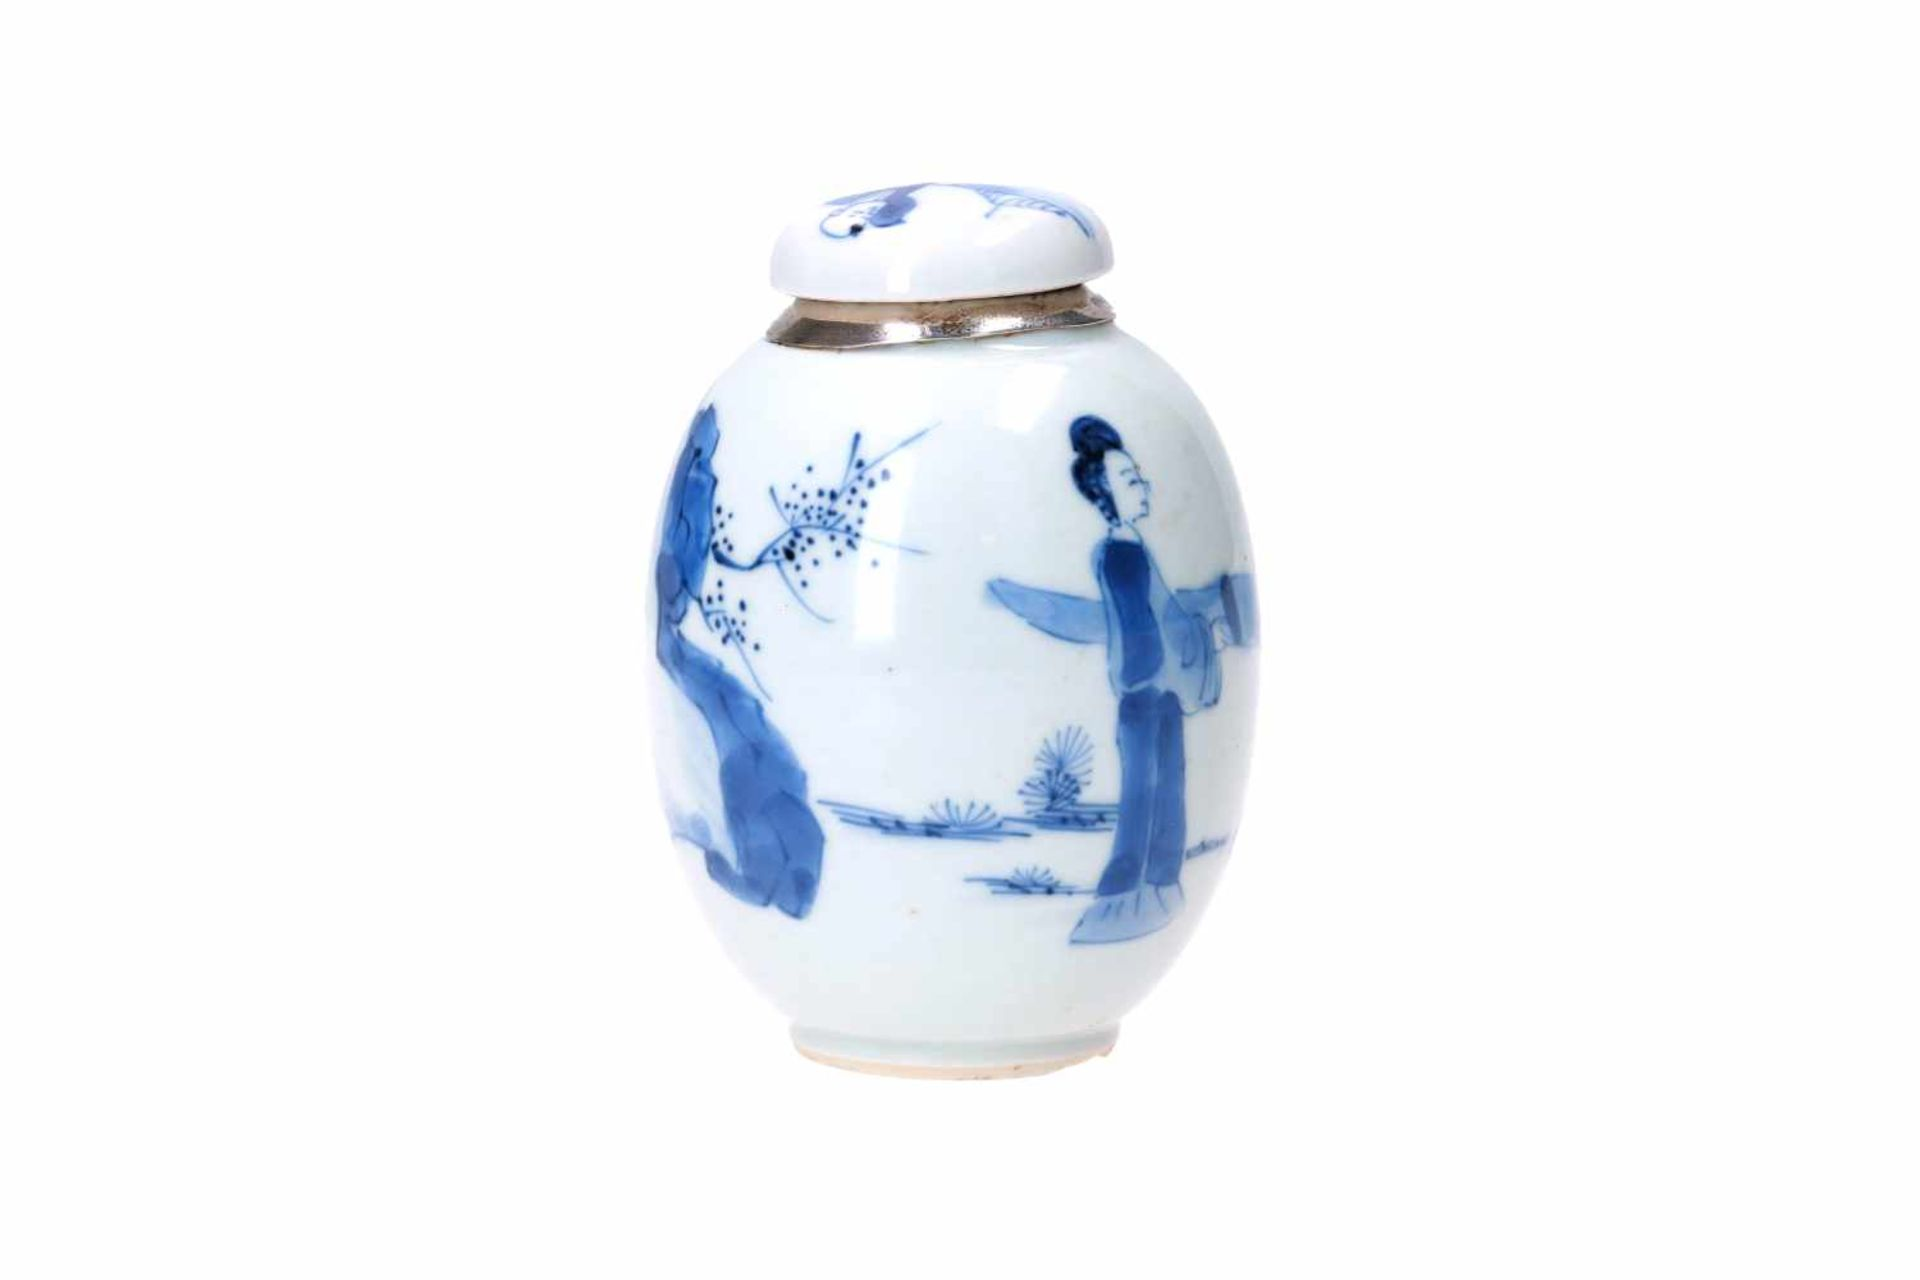 A blue and white porcelain lidded jar with later Dutch silver mounting, decorated with figures in - Bild 4 aus 11